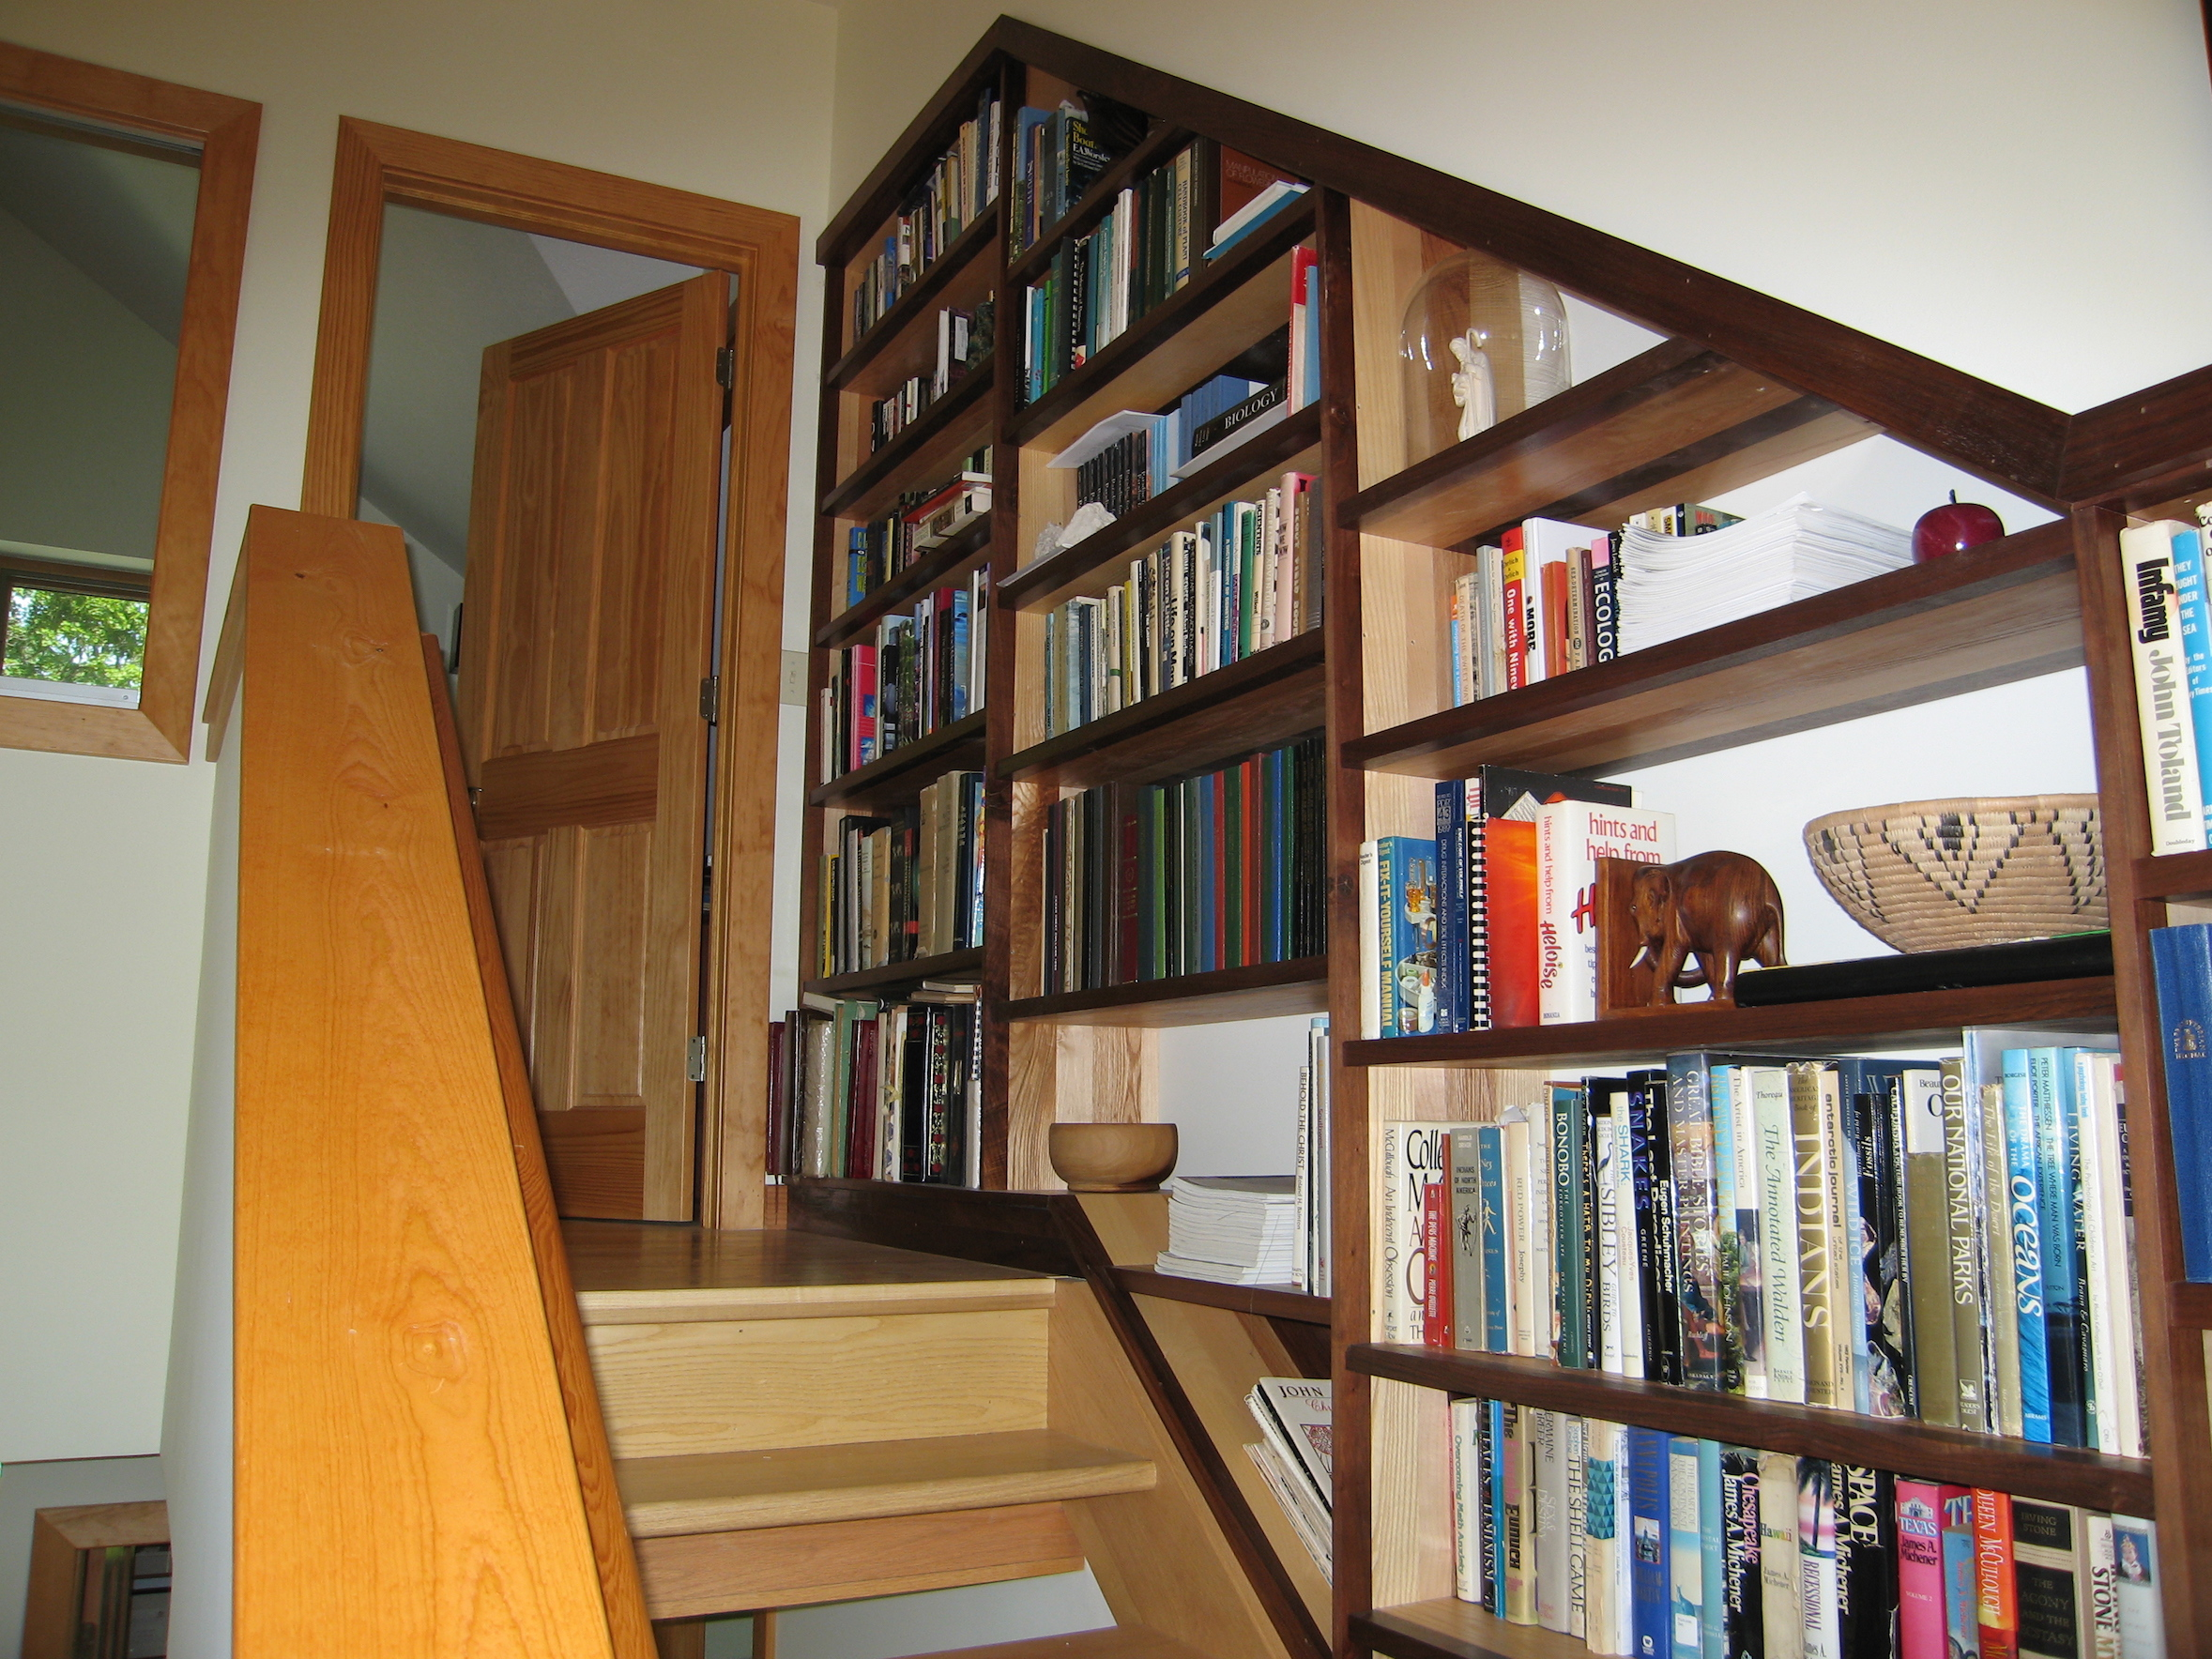 Trail Magic stairwell book cases; a positive energy home in Oberlin OH.